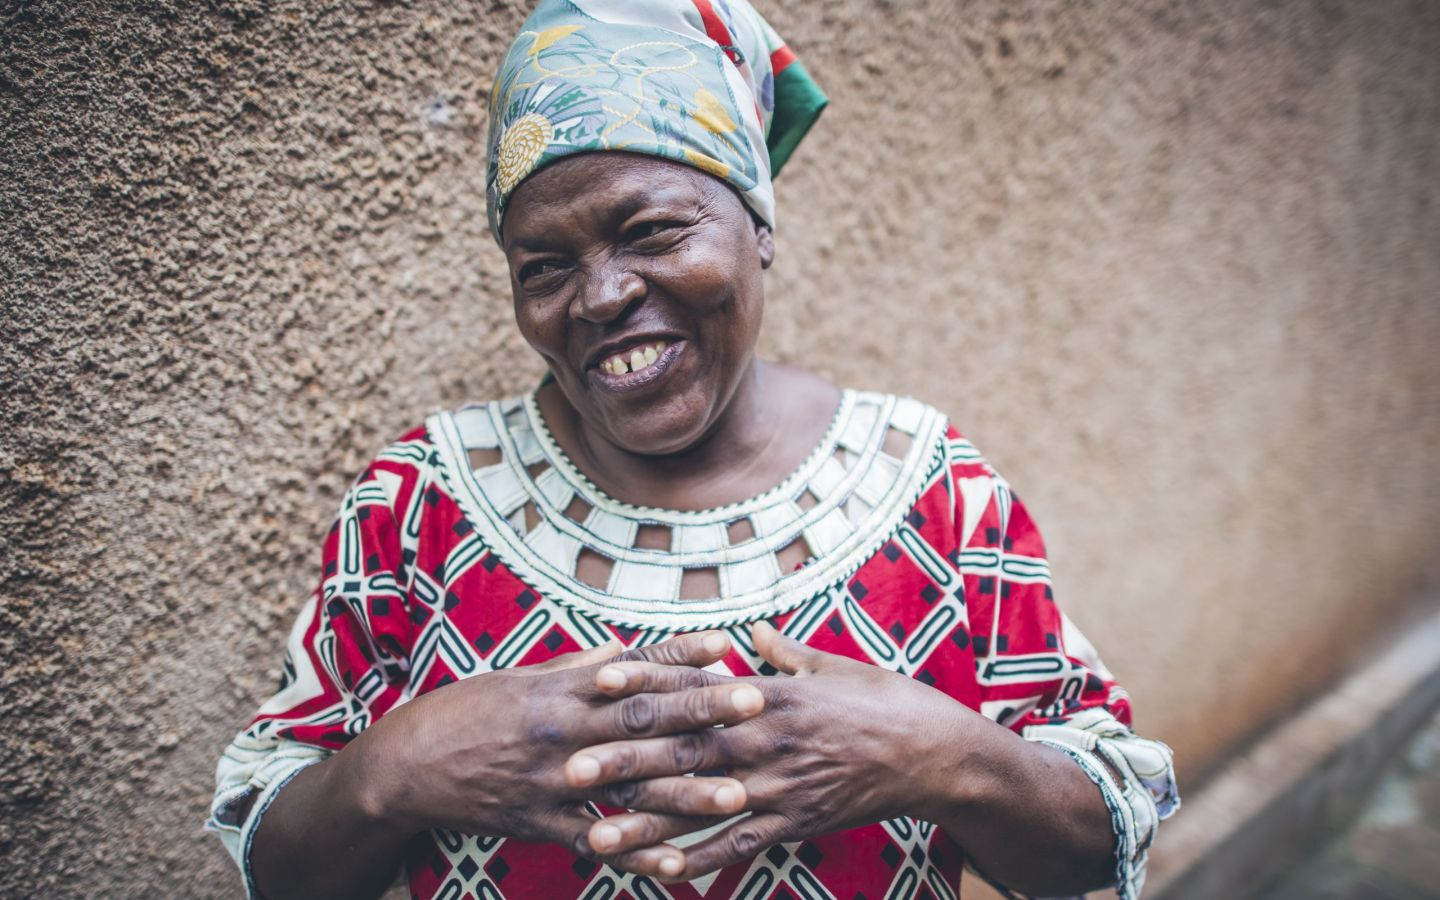 May 20, 2017 - Jaina Iddi Mwenda, 58, Community Health Officer for the government and WASH Coordinator for Water Mission in and around her home. Taken by Sean Sheridan, for Water Mission.